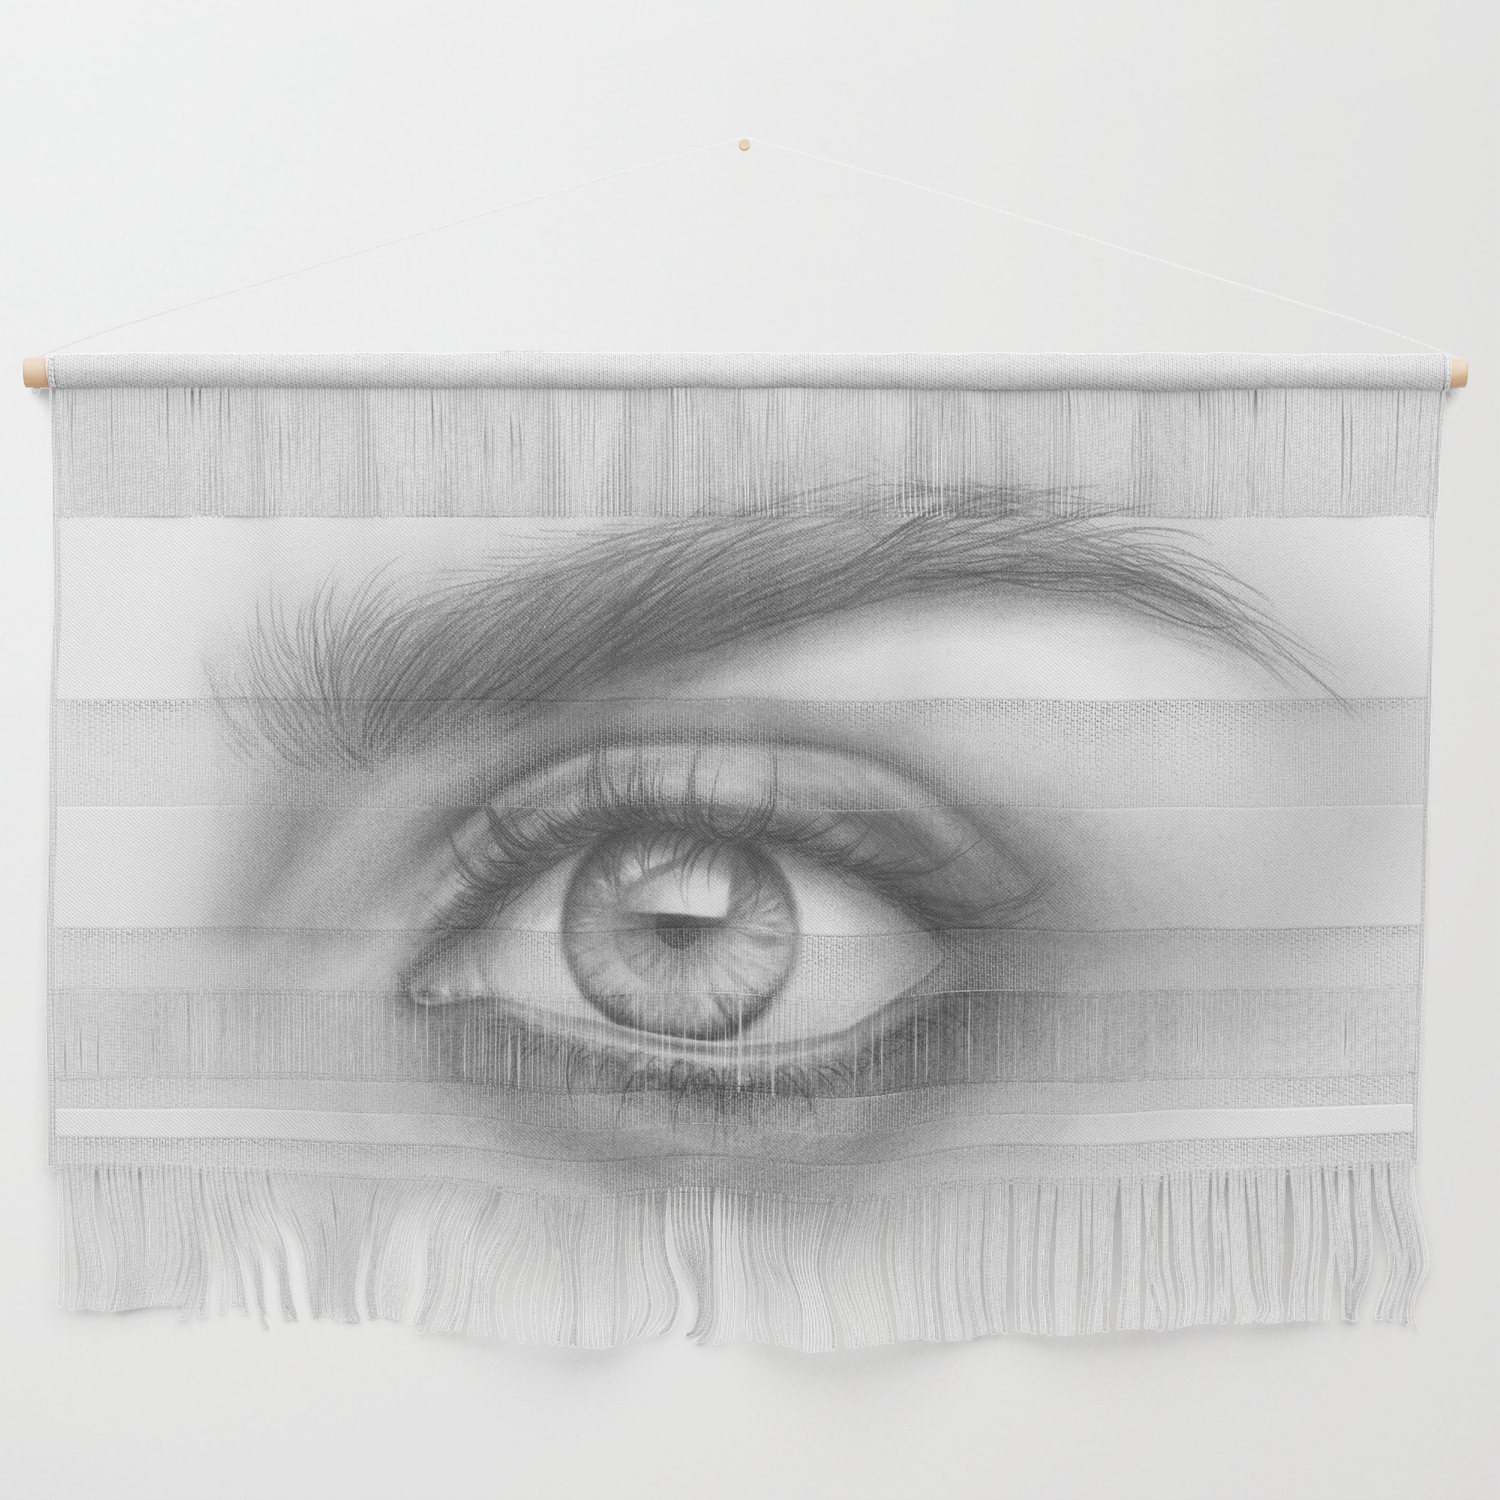 Eye art sexy girl beauty model woman face graphite drawing pencil black and white art wall hanging by magdaopoka